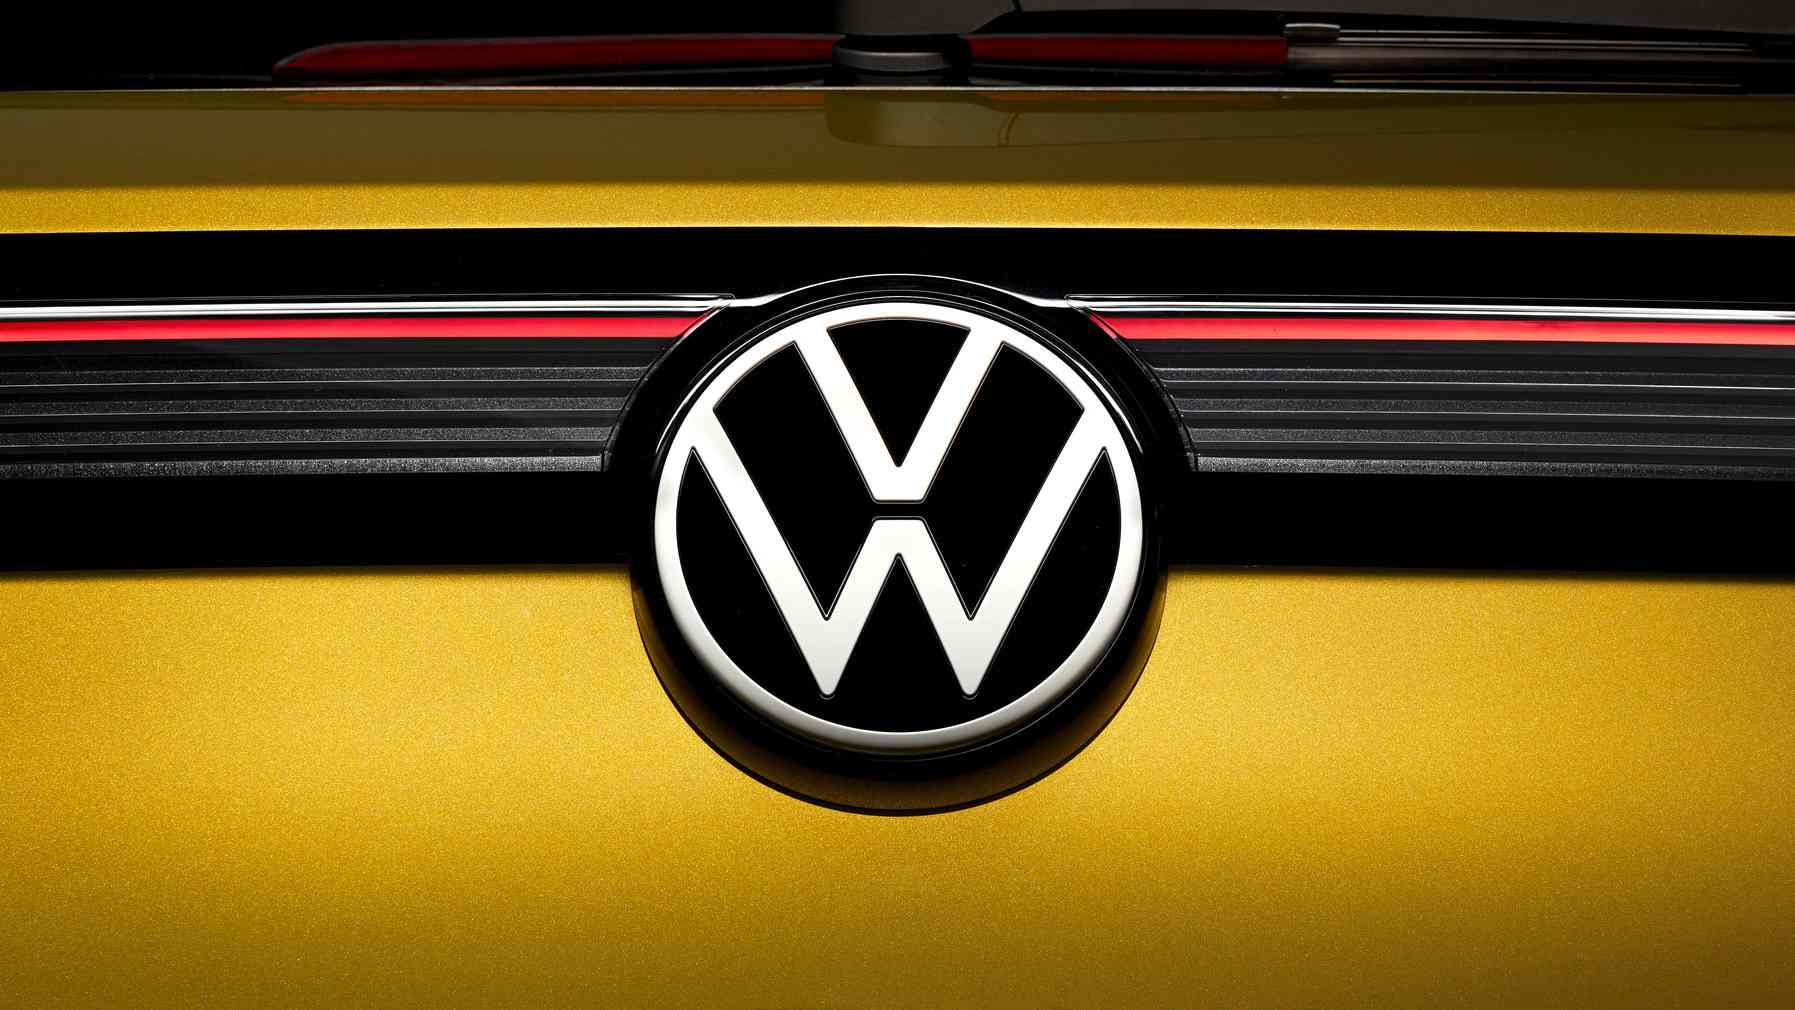 Wireless connectivity in future Volkswagen Group vehicles will be enabled by Huawei's 4G technologies. Image: Volkswagen